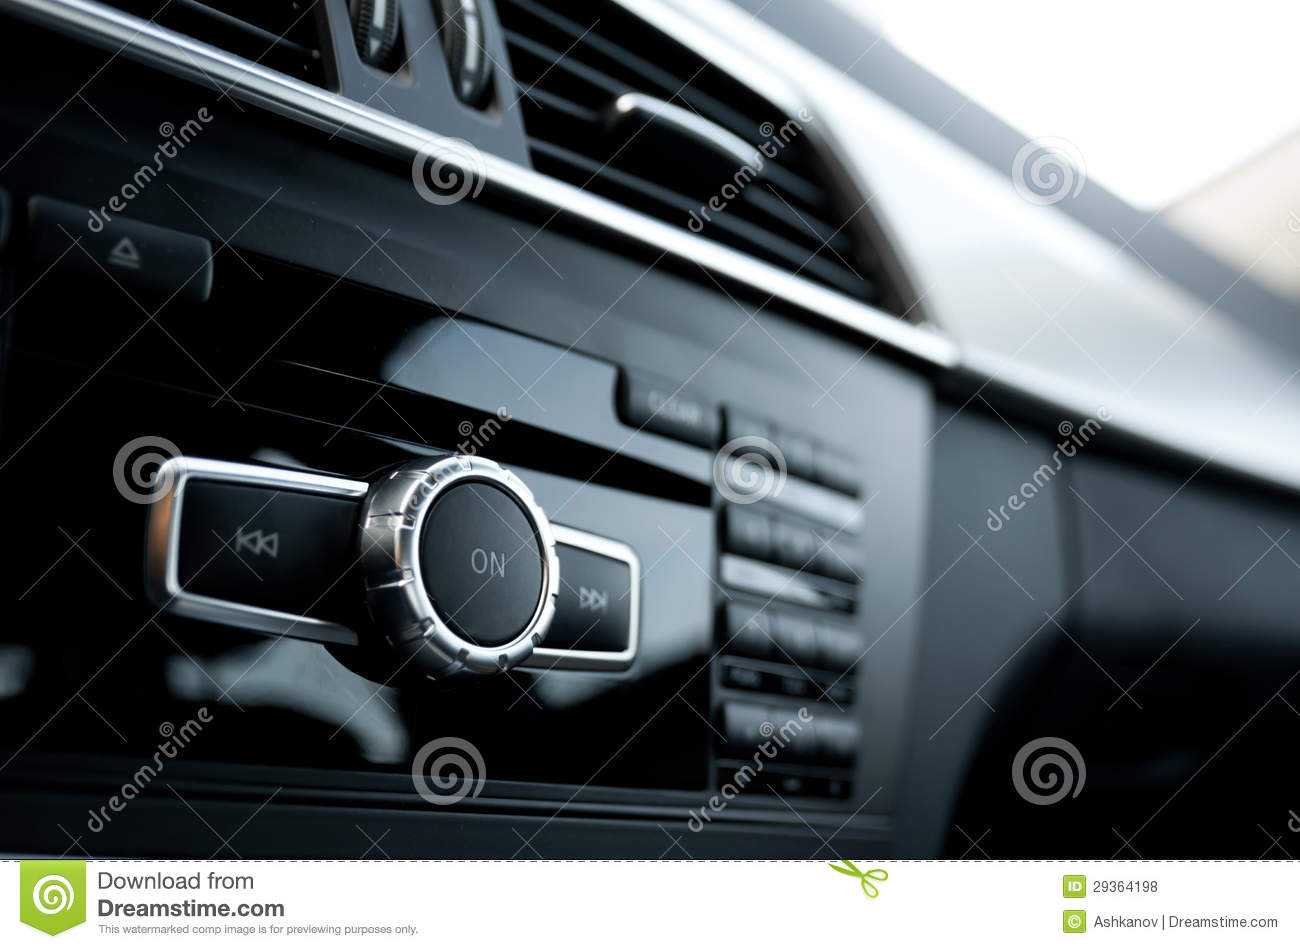 car audio system royalty free stock photos image 29364198. Black Bedroom Furniture Sets. Home Design Ideas